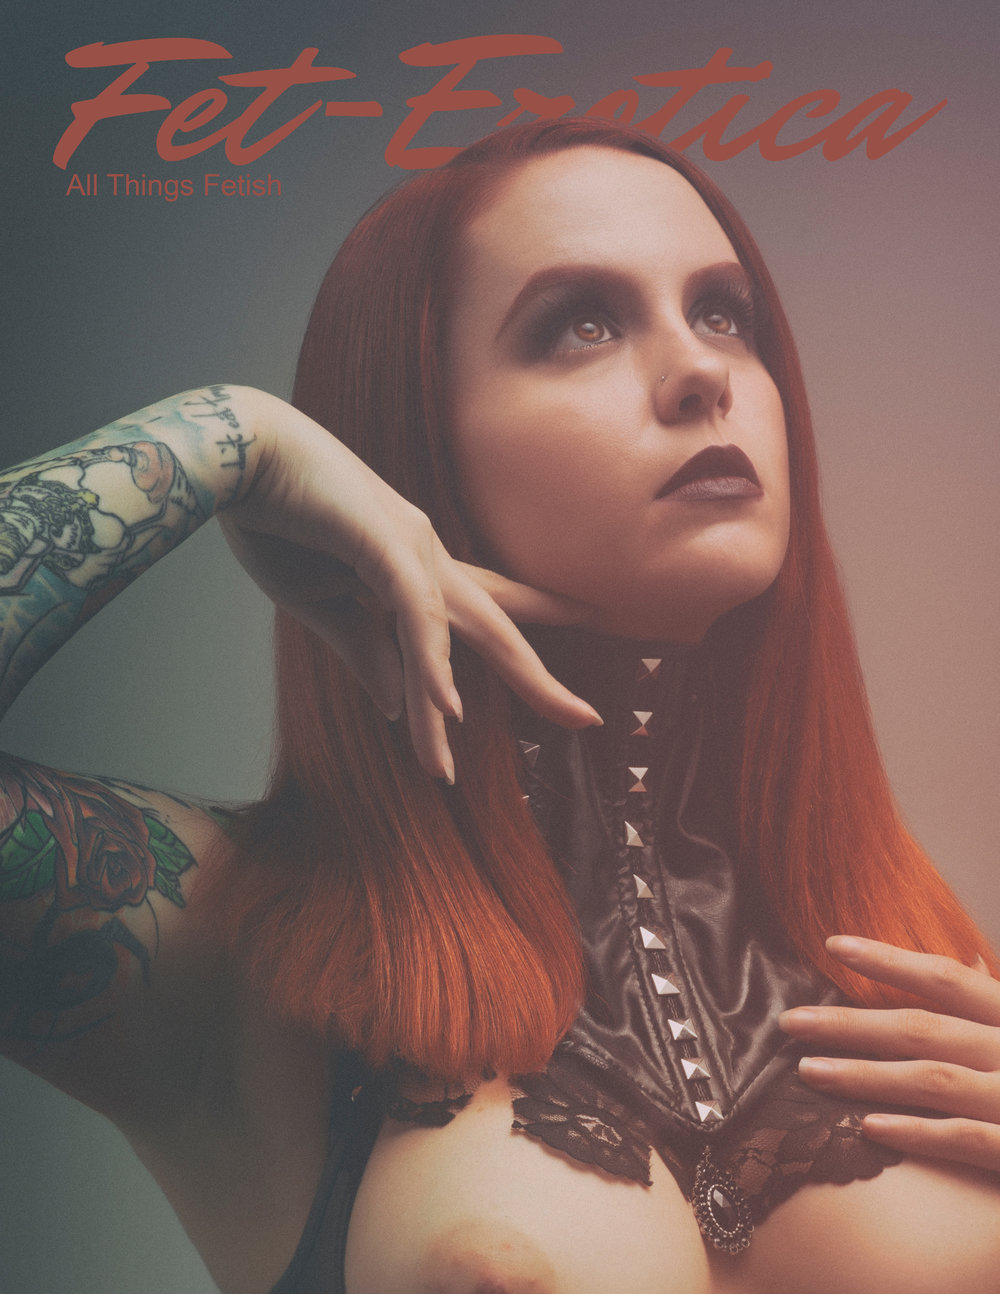 Fet-Erotica Magazine Issue 2 Fetish cover